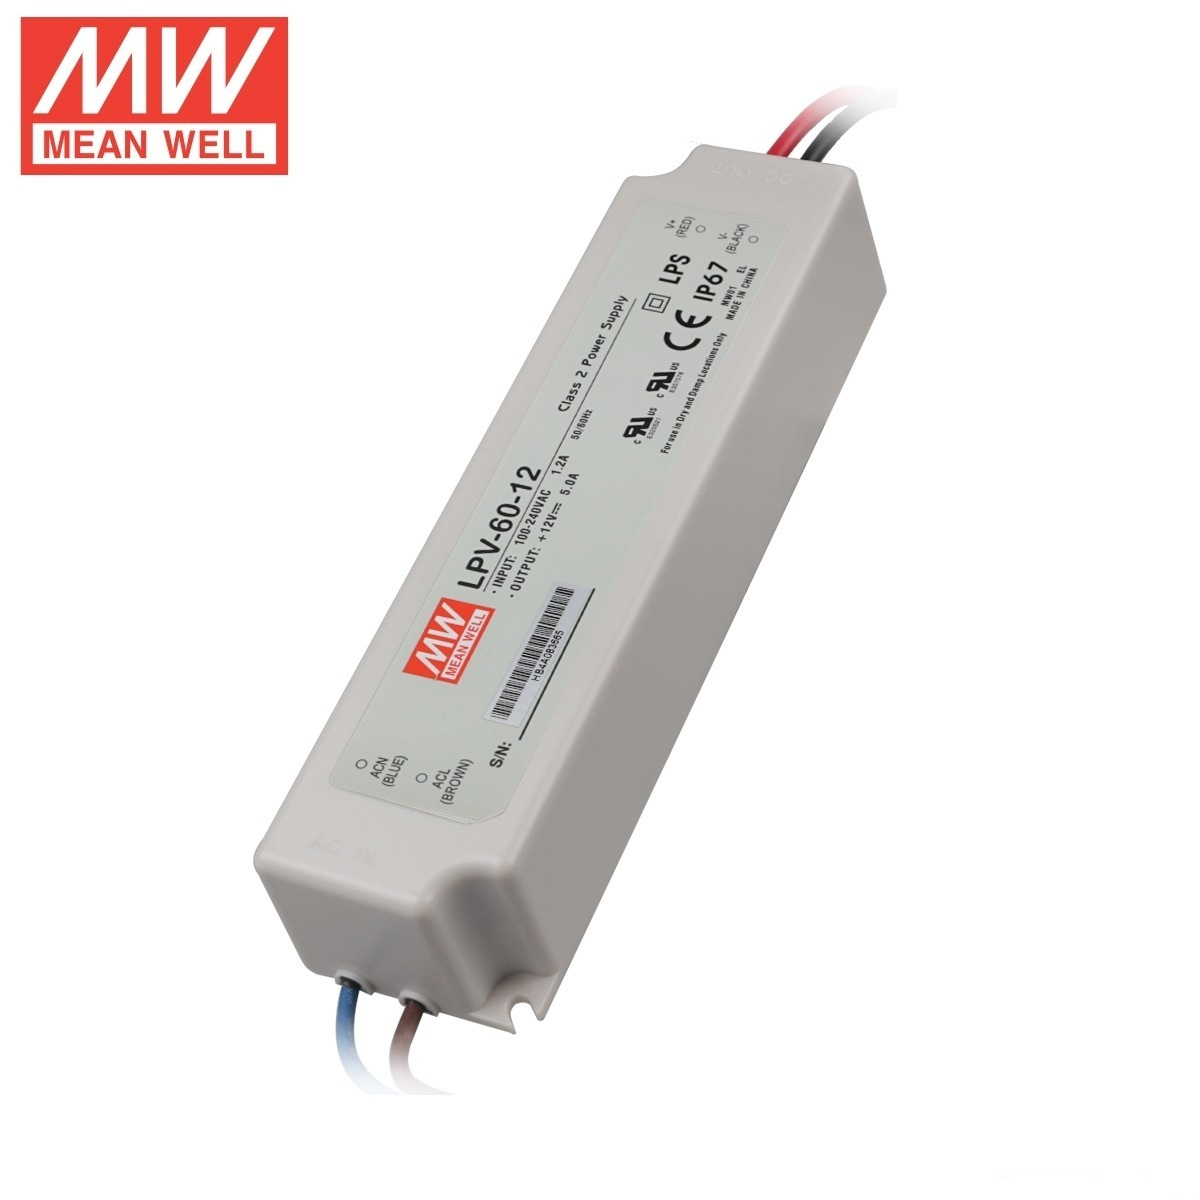 Waterproof Meanwell Lpv-60 12V IP67 60W LED Power Supply